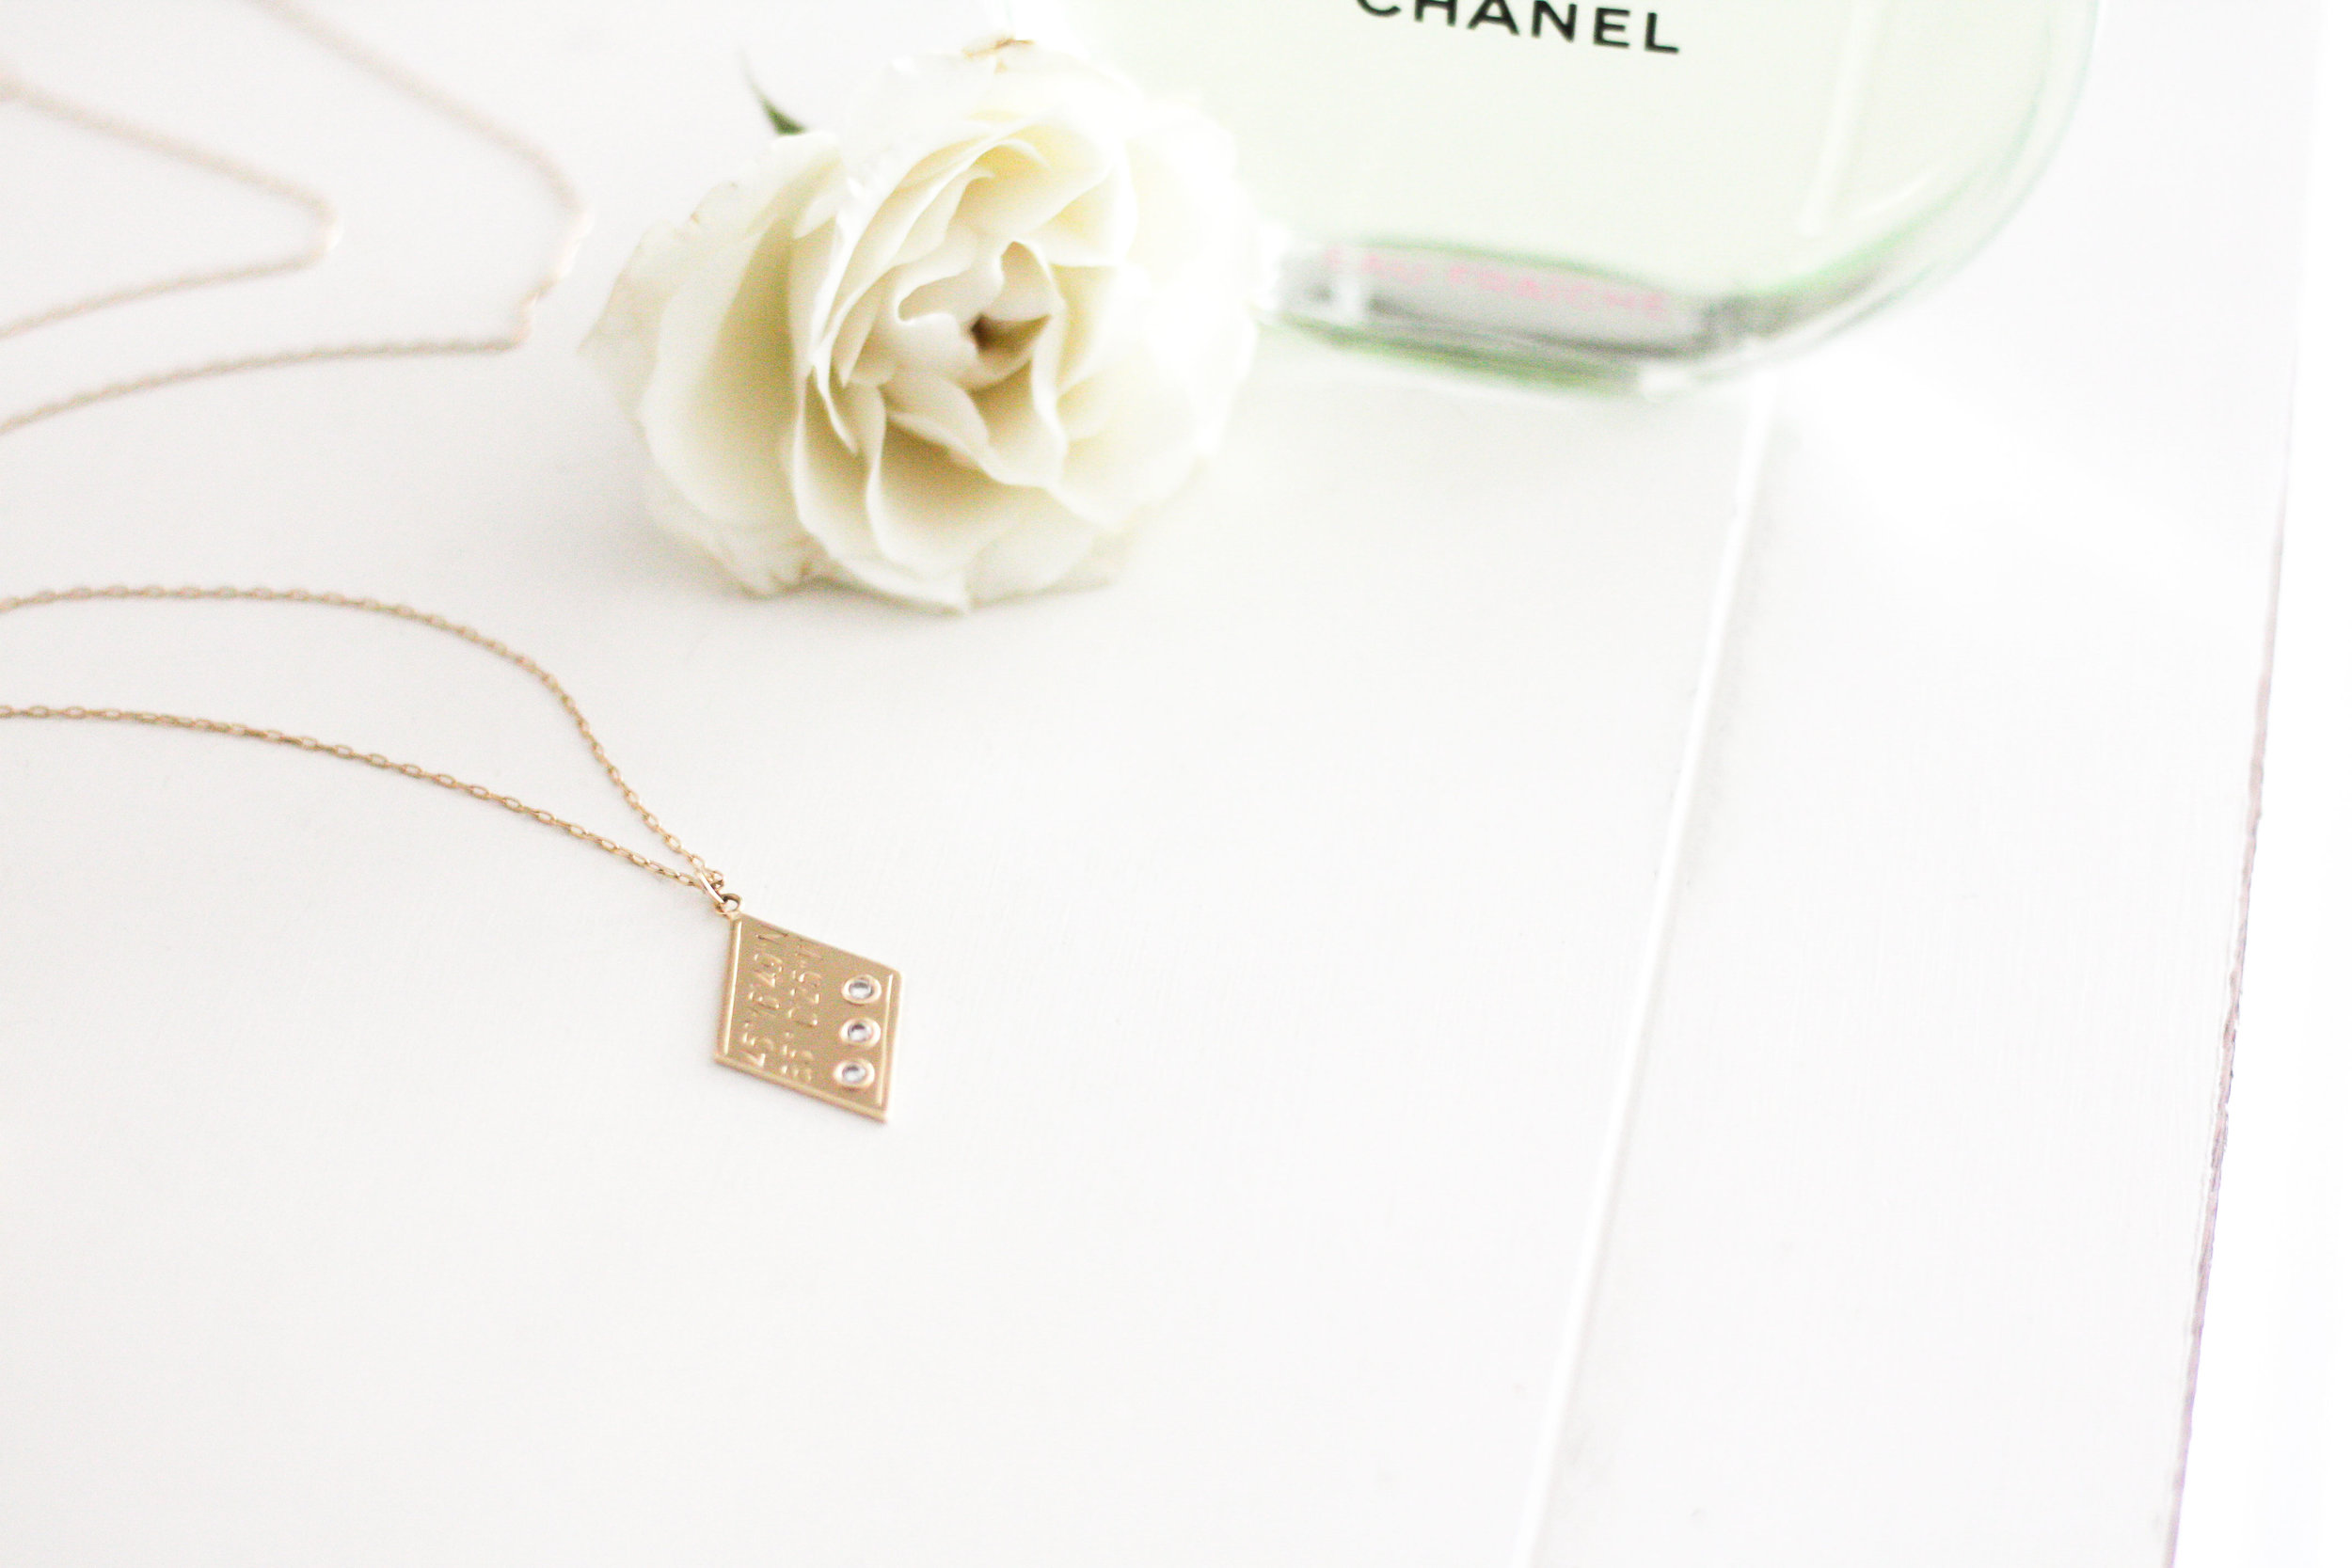 coordinates-pendant-by-kerry-gilligan-in-14k-yellow-gold-with-diamonds.jpg